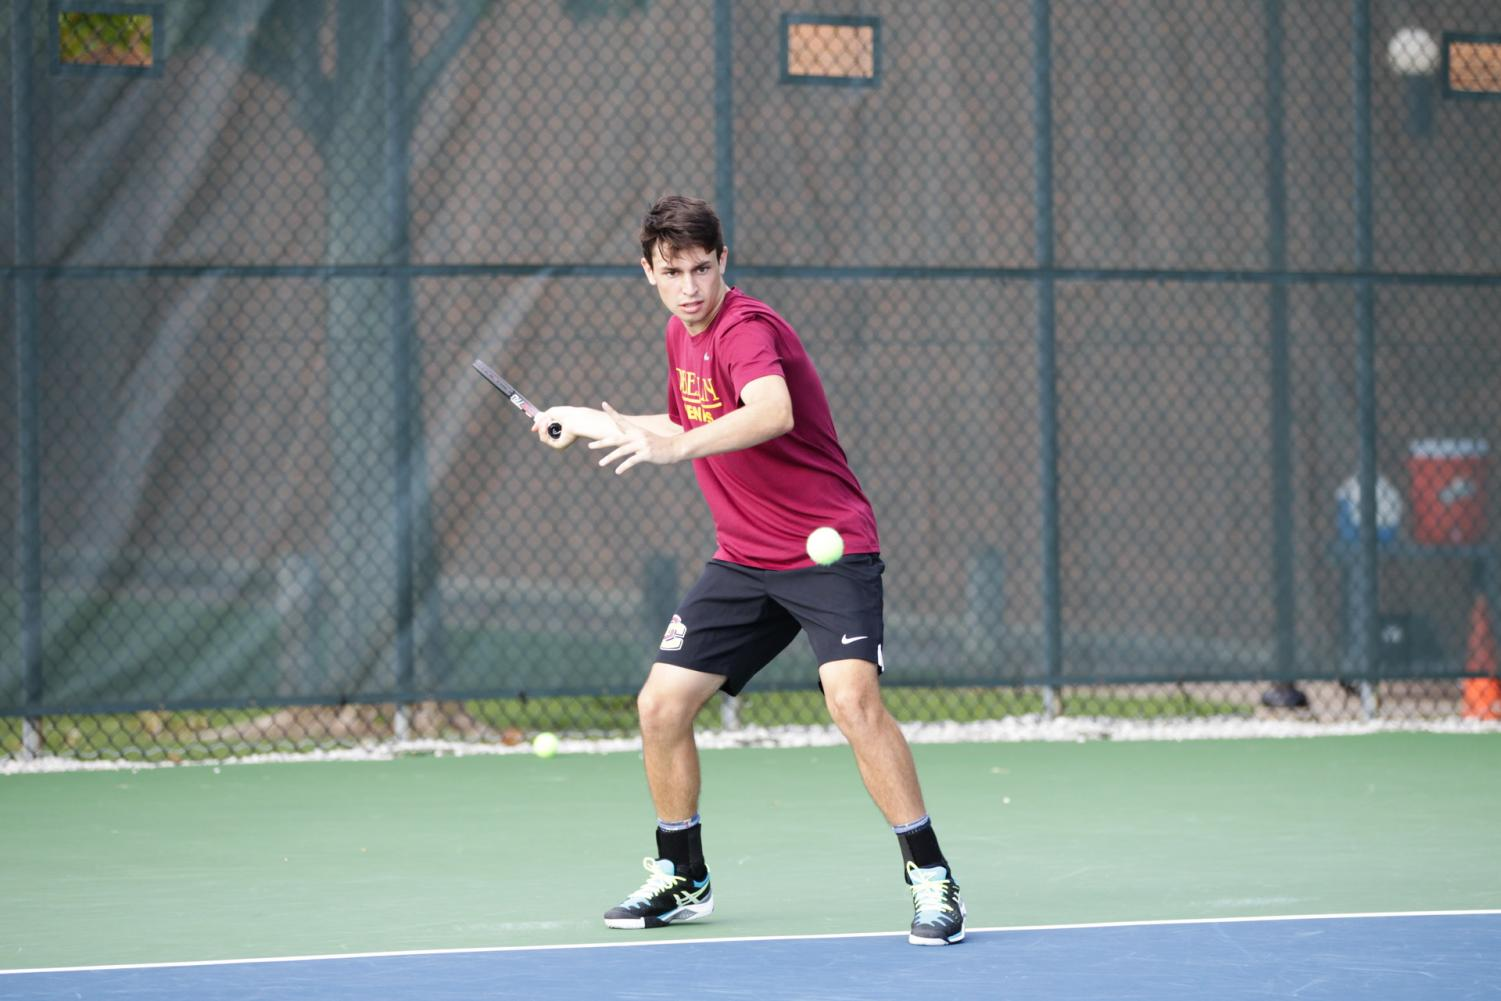 Sophomore Stephen Gruppuso played a major role in the Yeomen's victory over No. 35 Hobart College Sunday. Gruppuso and fellow sophomore Camron Cohen won their doubles match in the No. 1 spot 7–5, which gave the team momentum going into singles play.